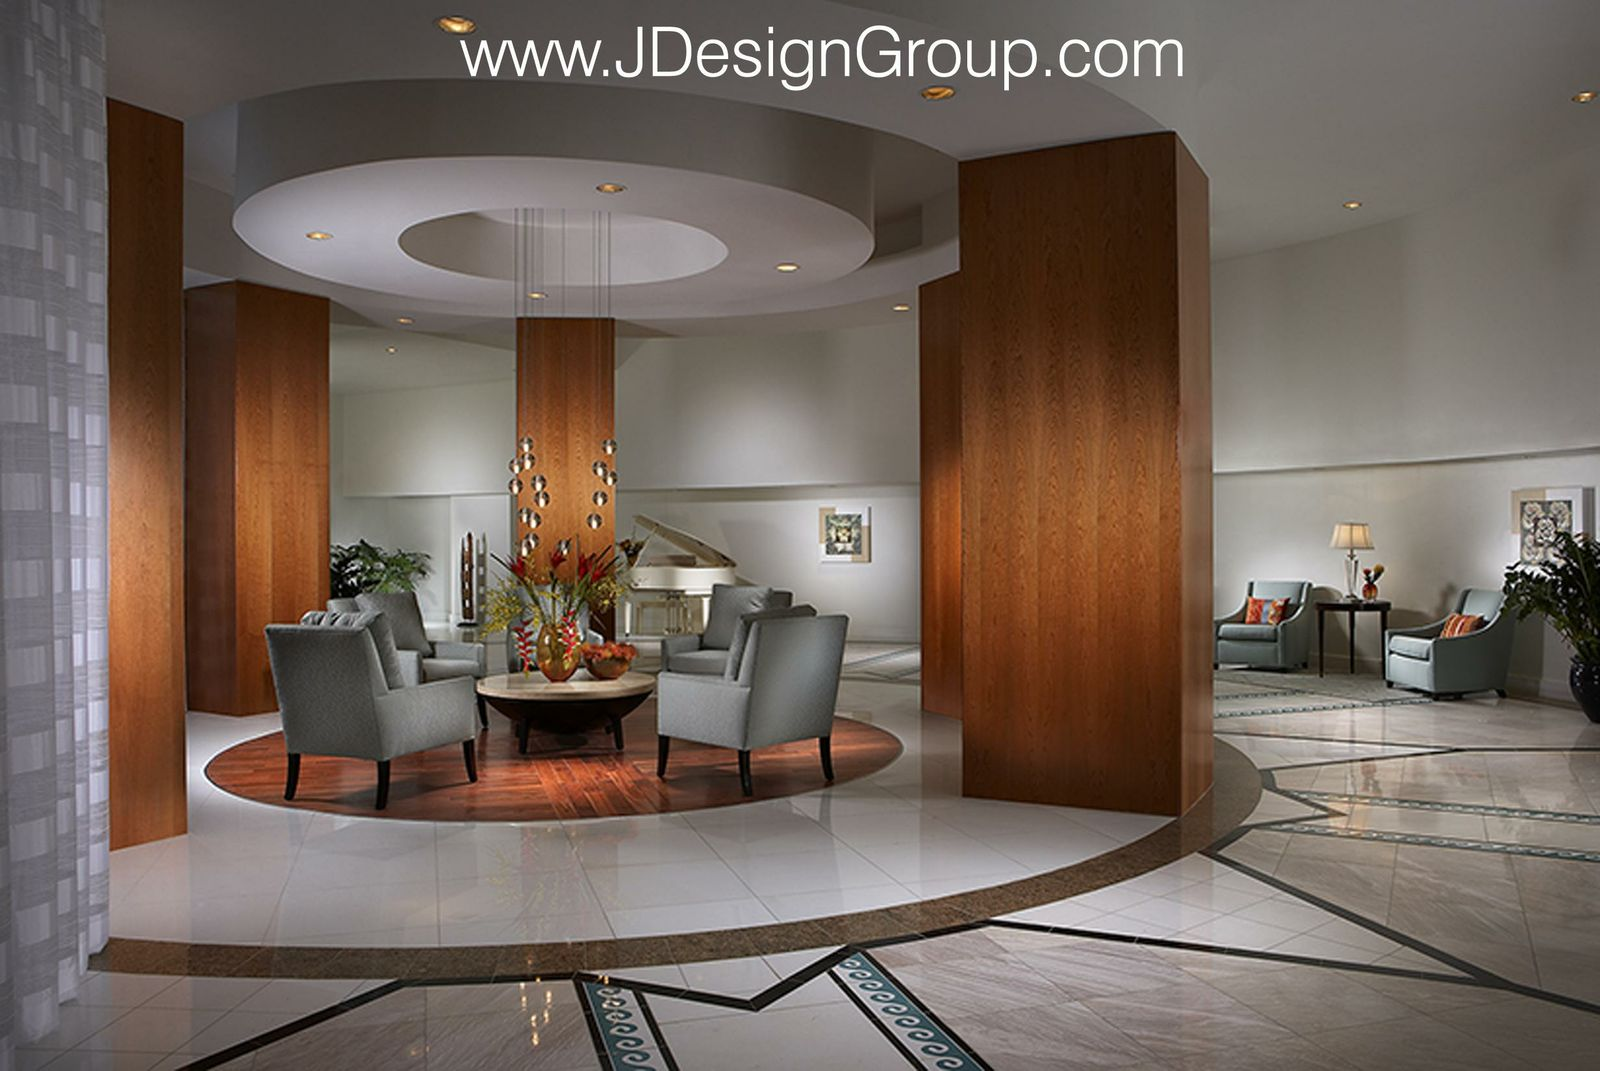 Florida Design Magazine Features J. Design Group's Update